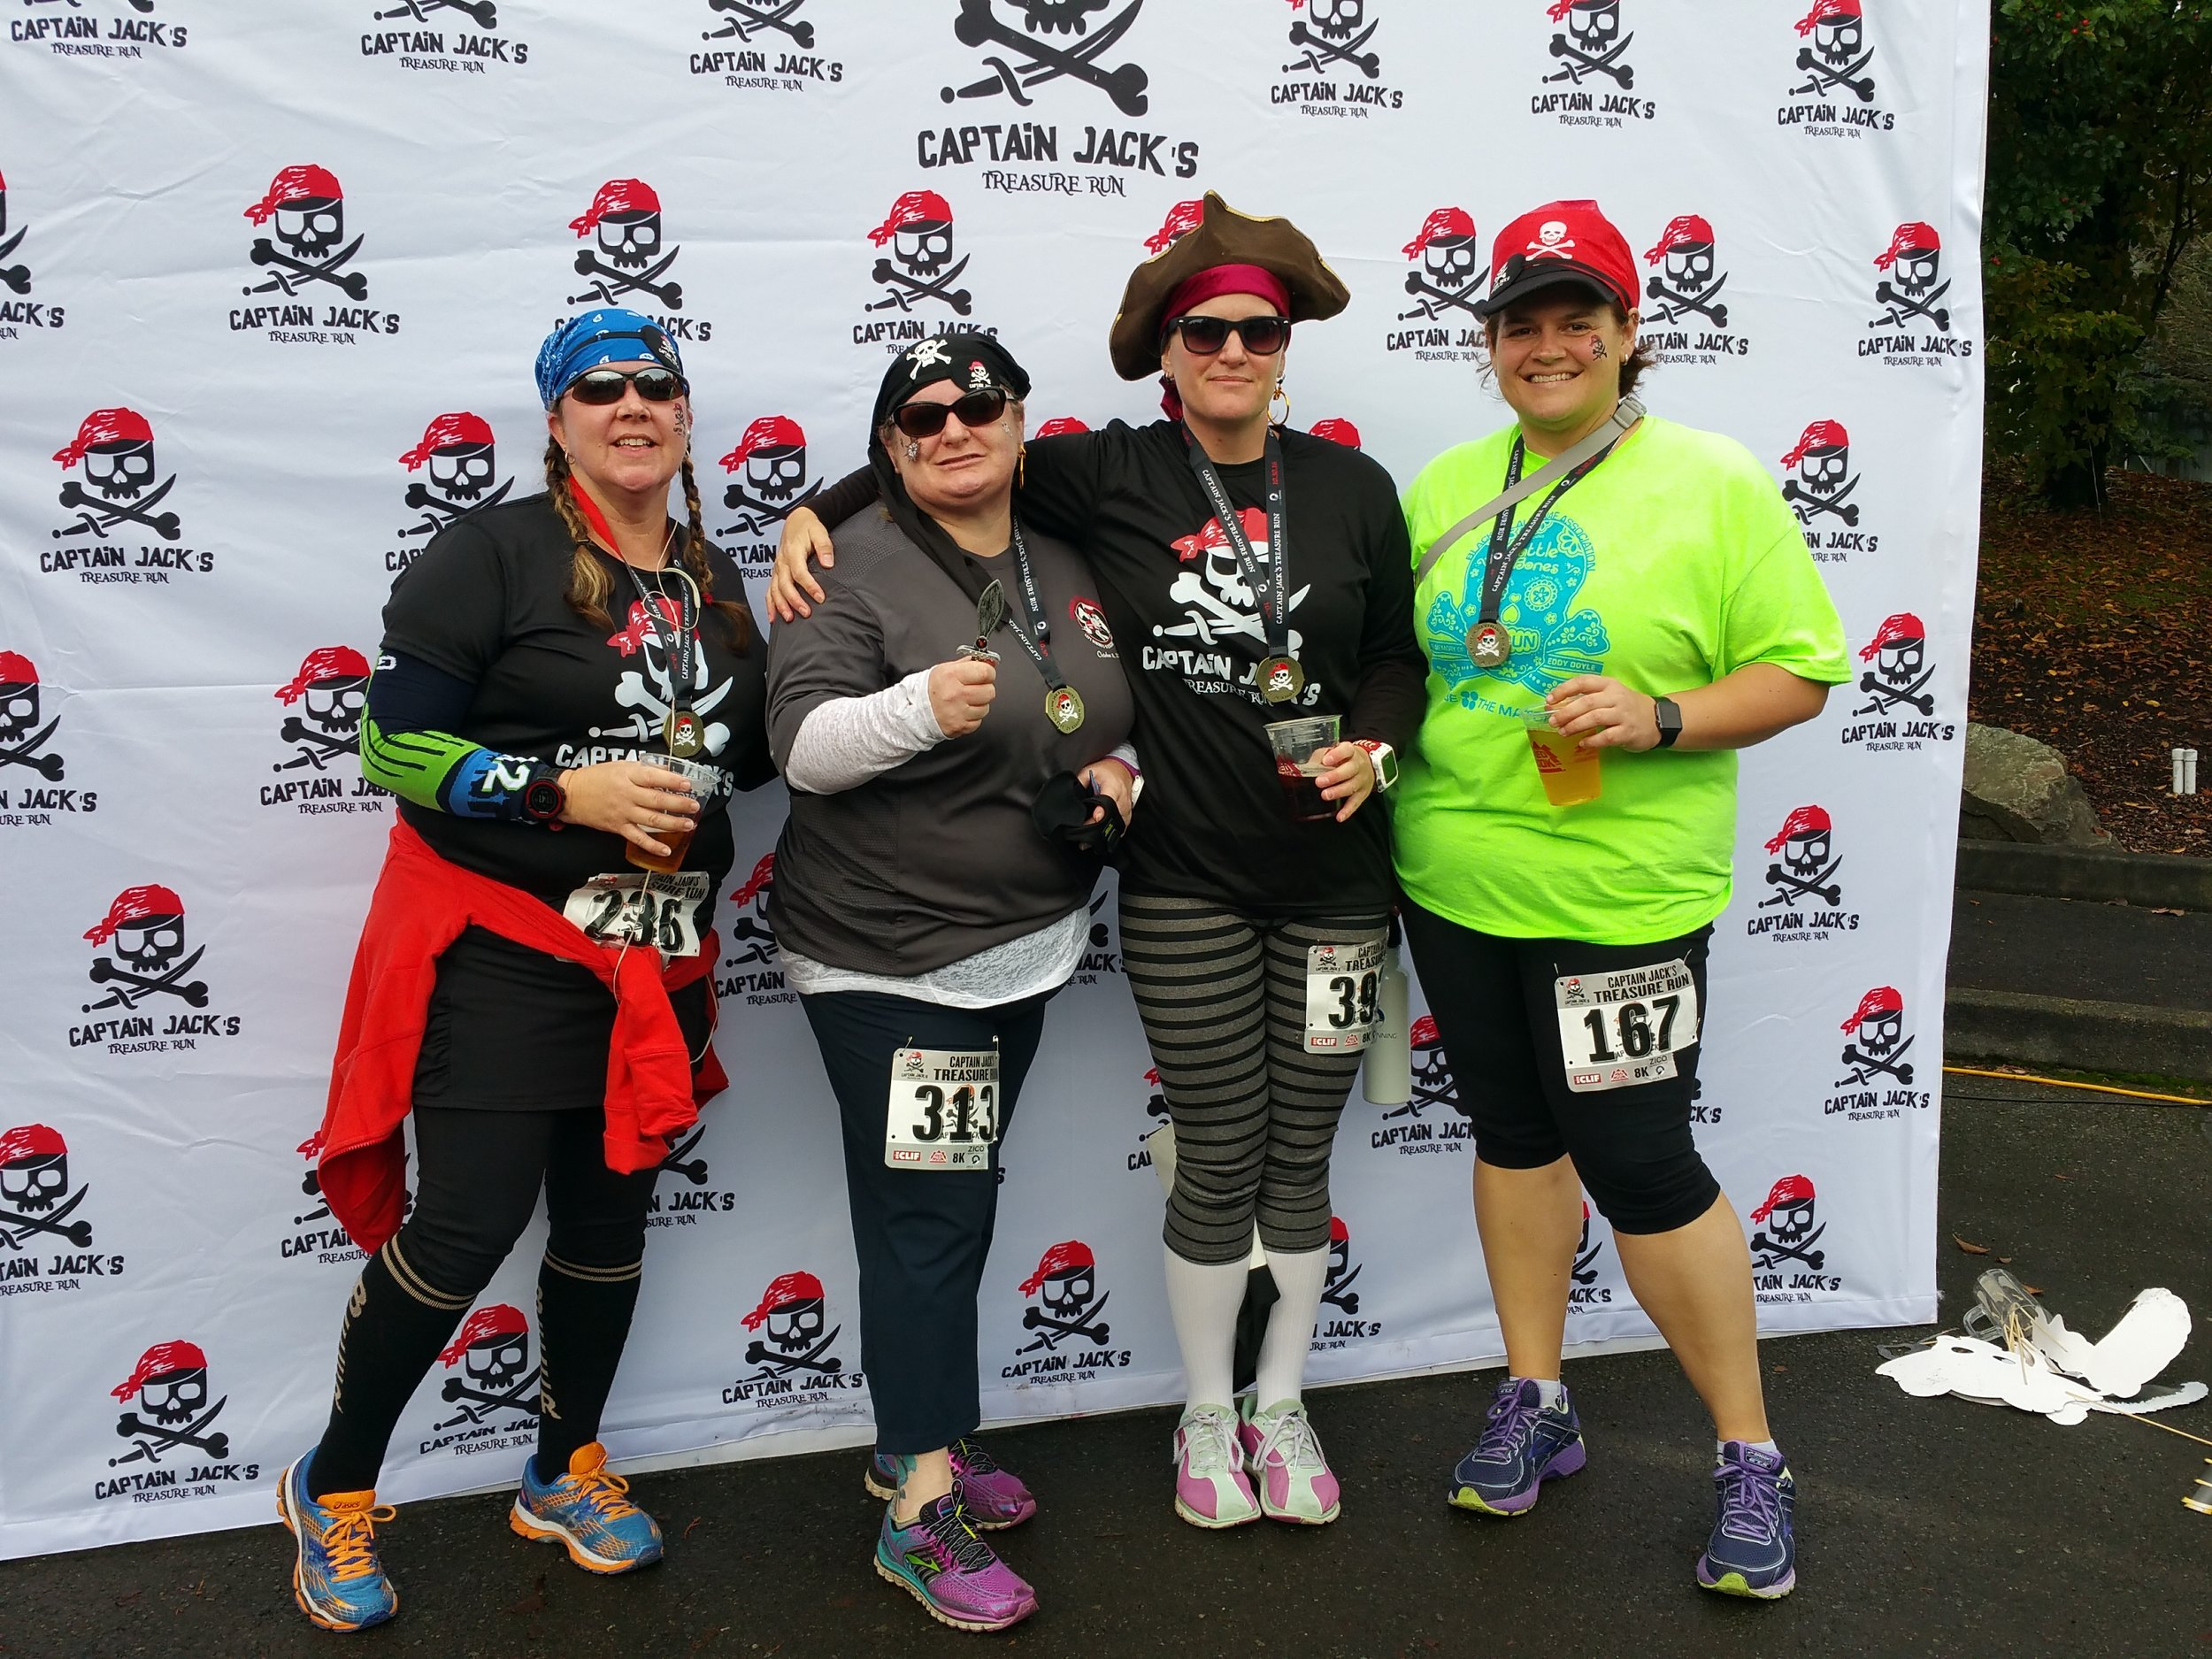 Some of the Pip Runner's with me at Captain Jack's. I may have turned down candy yesterday but I couldn't turn down the free beer at the race.